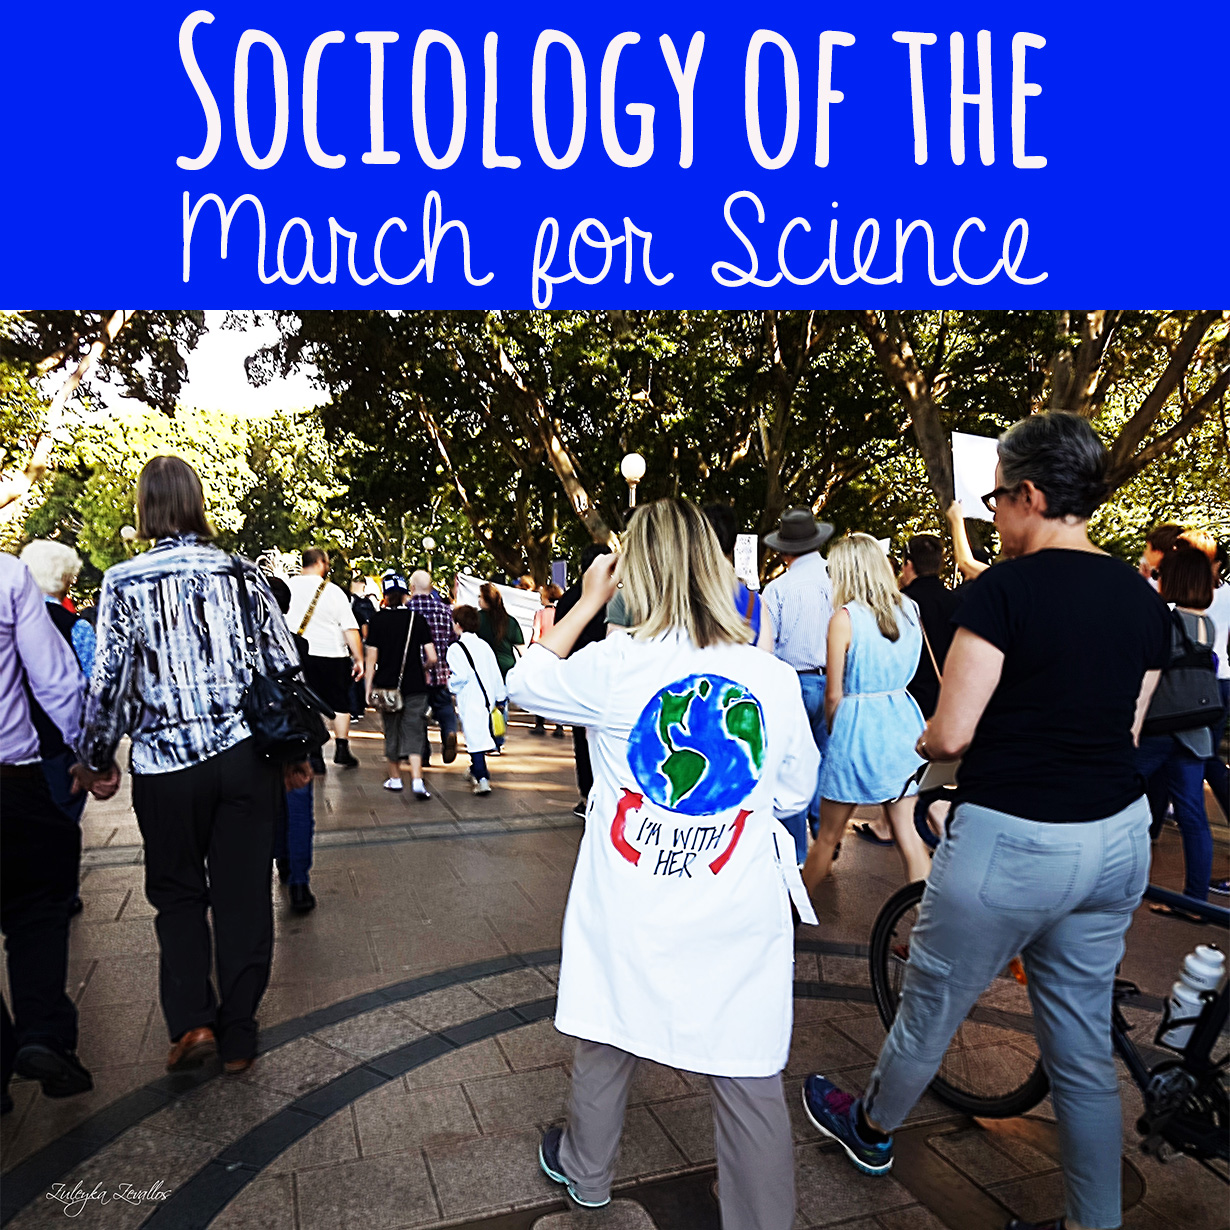 The Other Sociologist